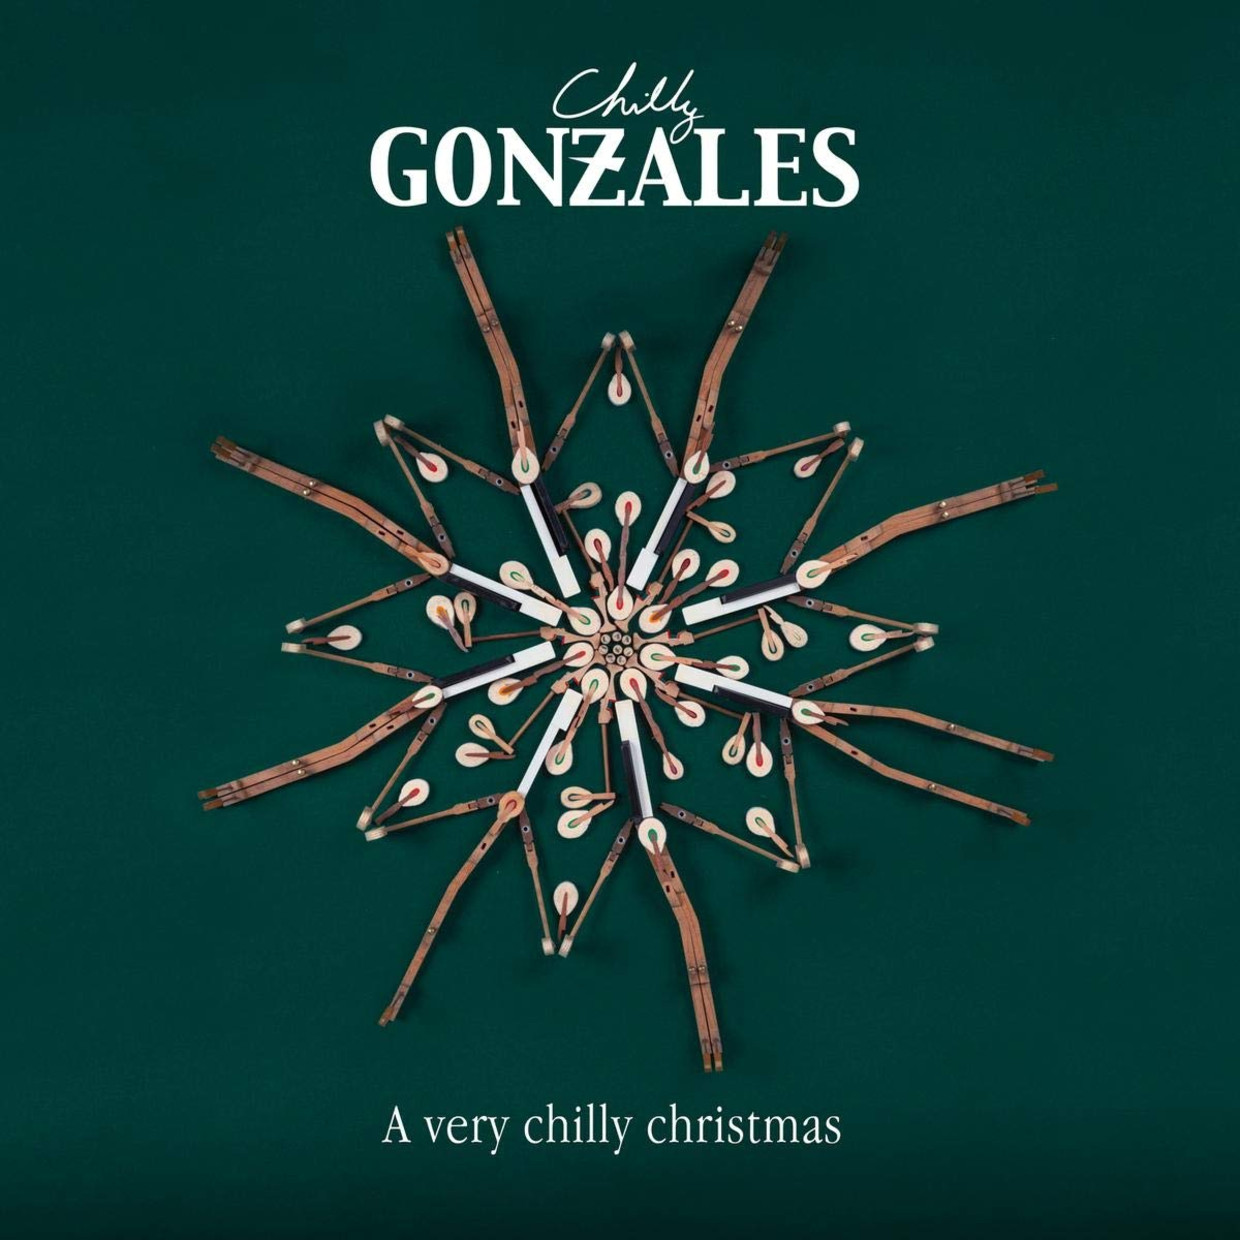 'A Very Chilly Christmas' Beeld Chilly Gonzales